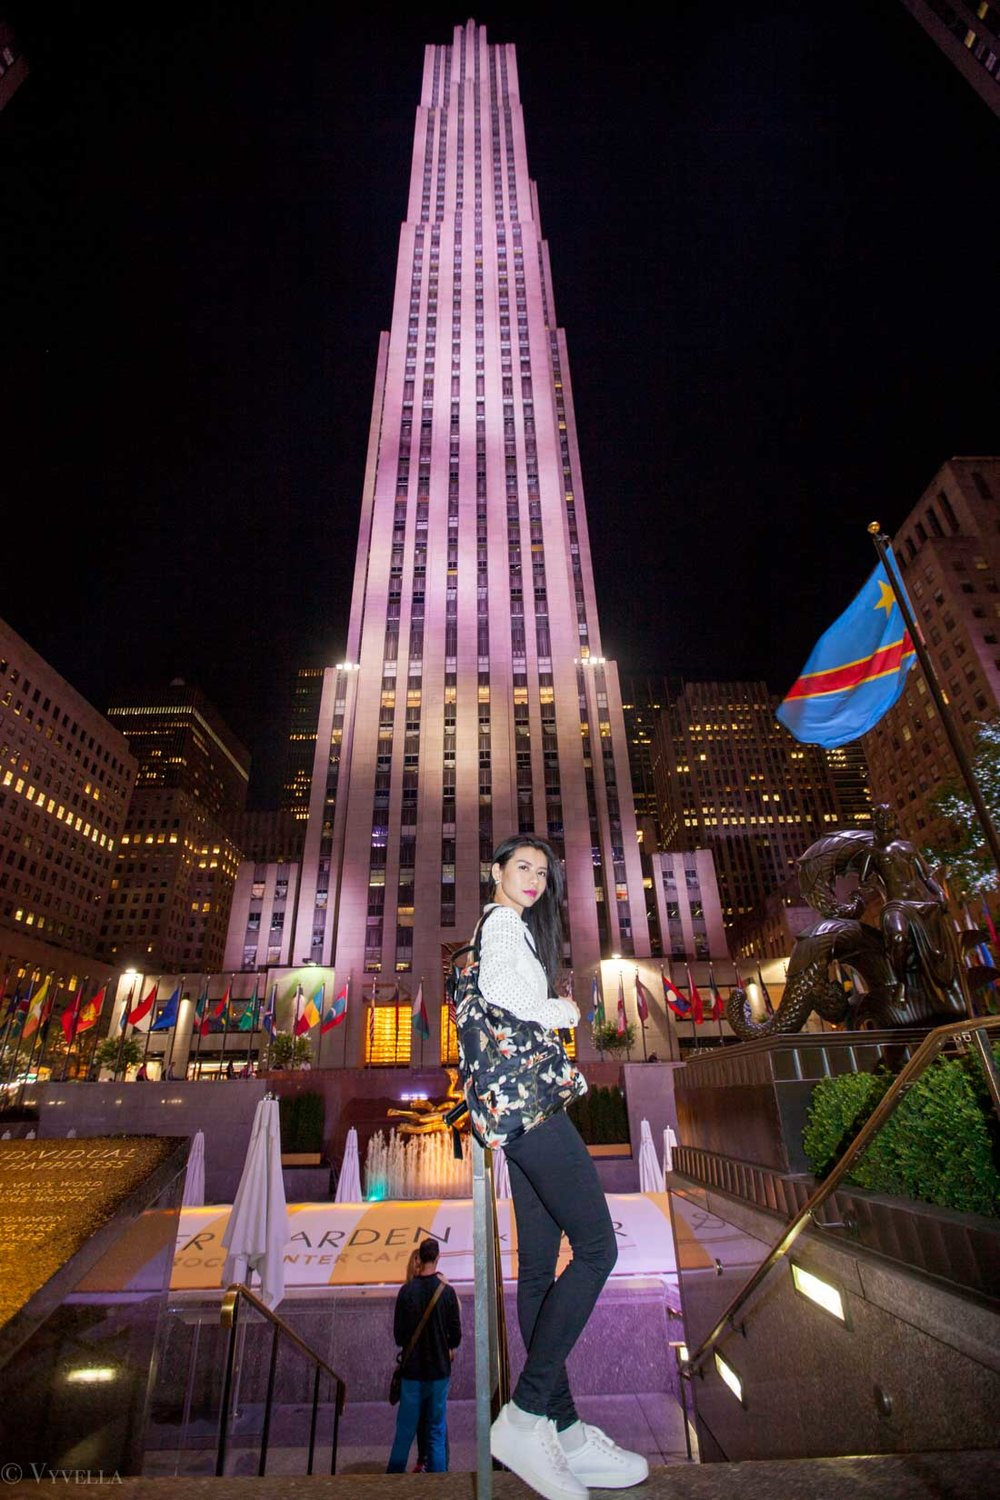 travel_night-at-rockefeller-center_01.jpg